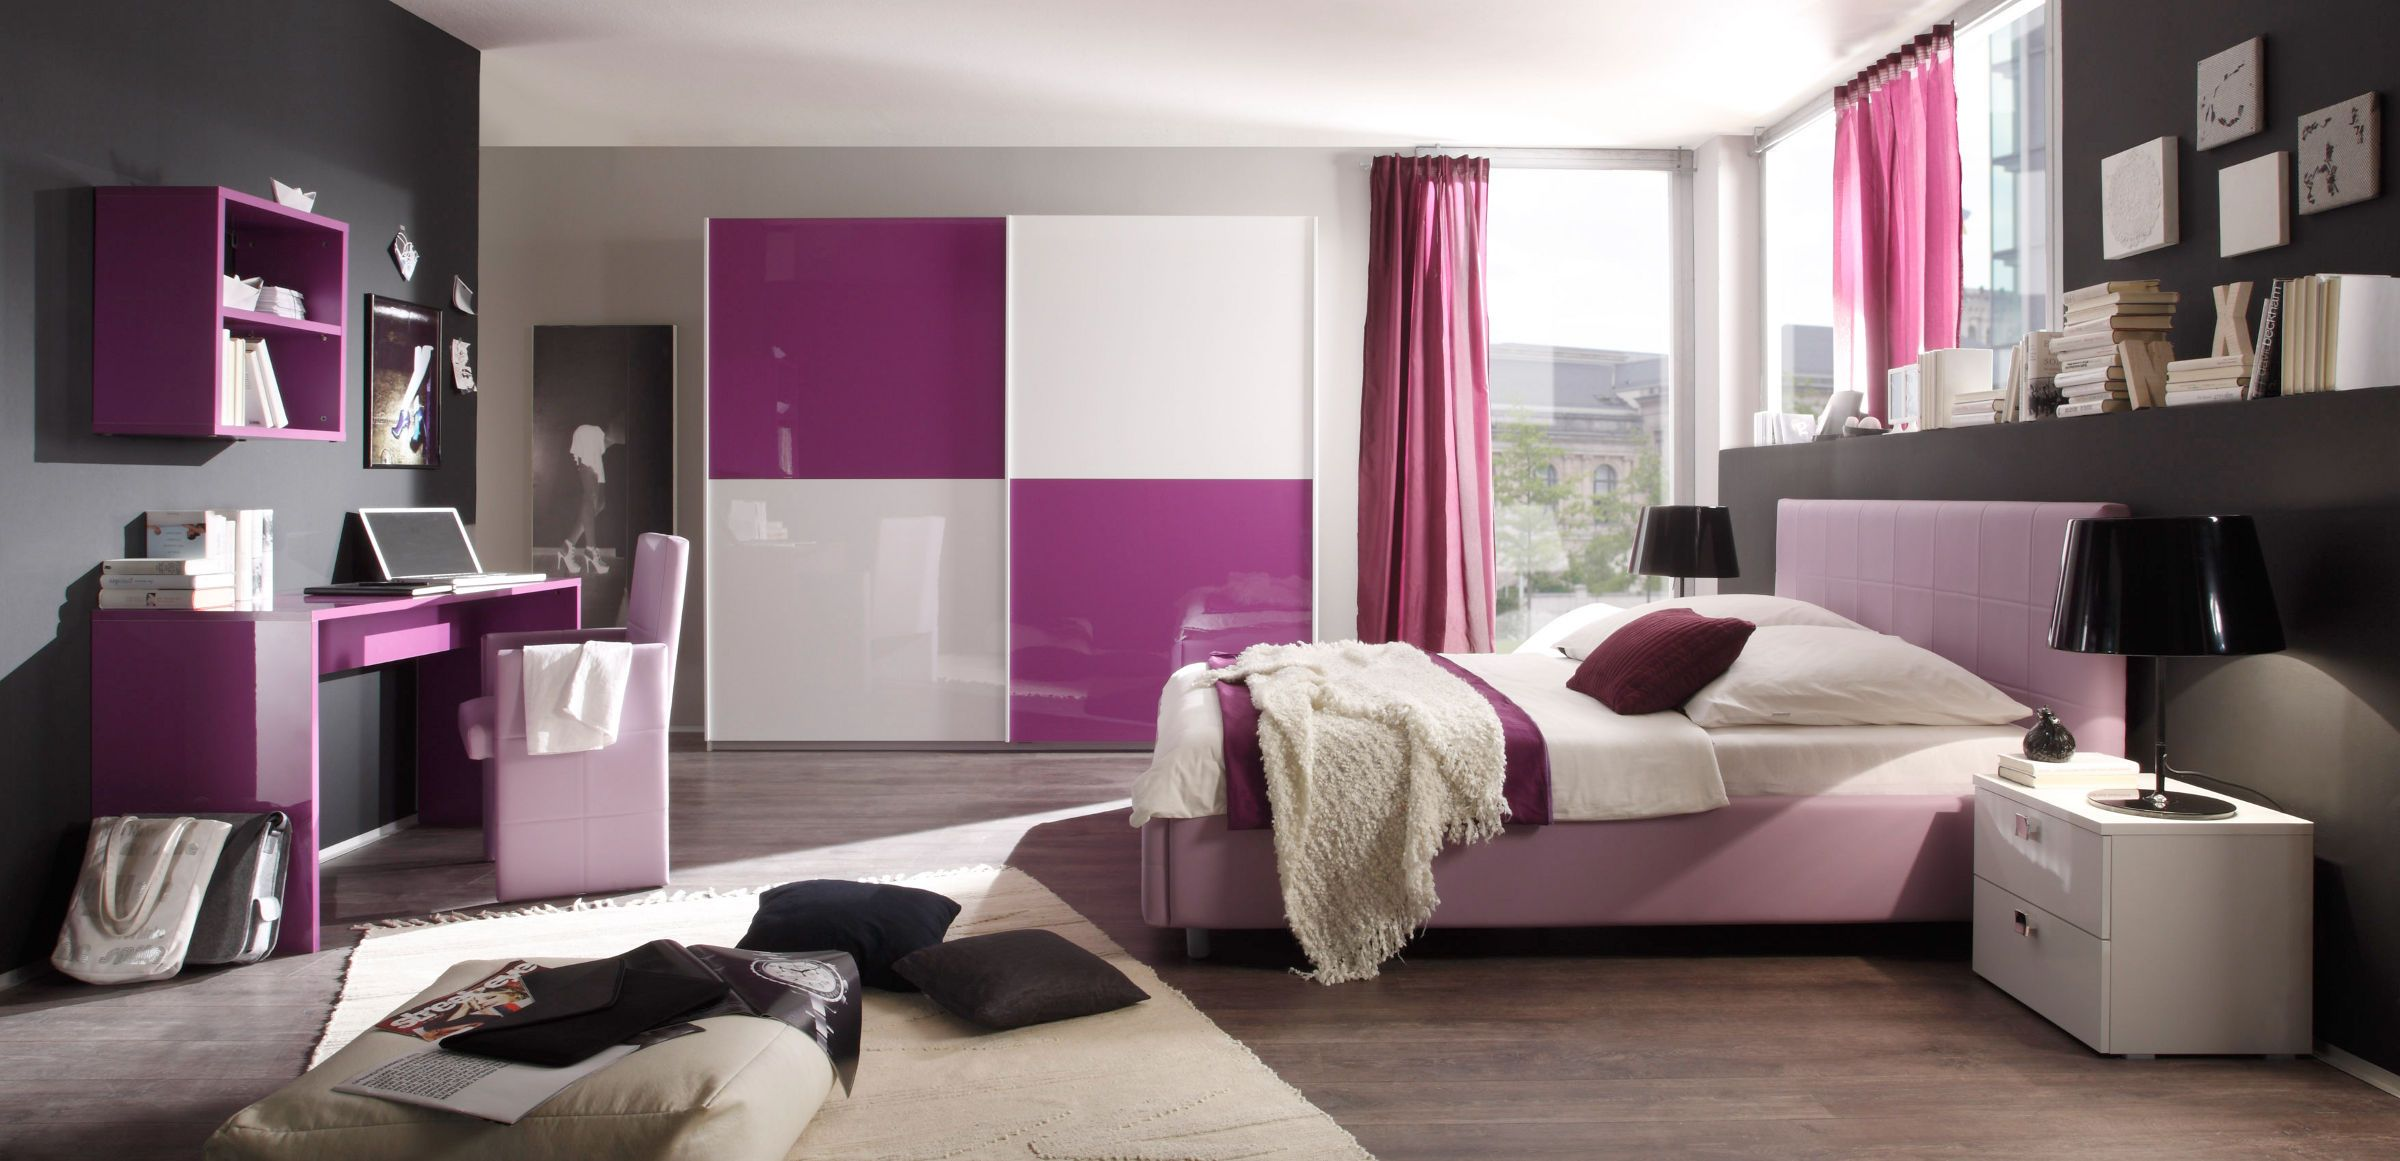 schlafzimmer wei lila hochglanz lack italien colorativi1 pimp my room pinterest. Black Bedroom Furniture Sets. Home Design Ideas